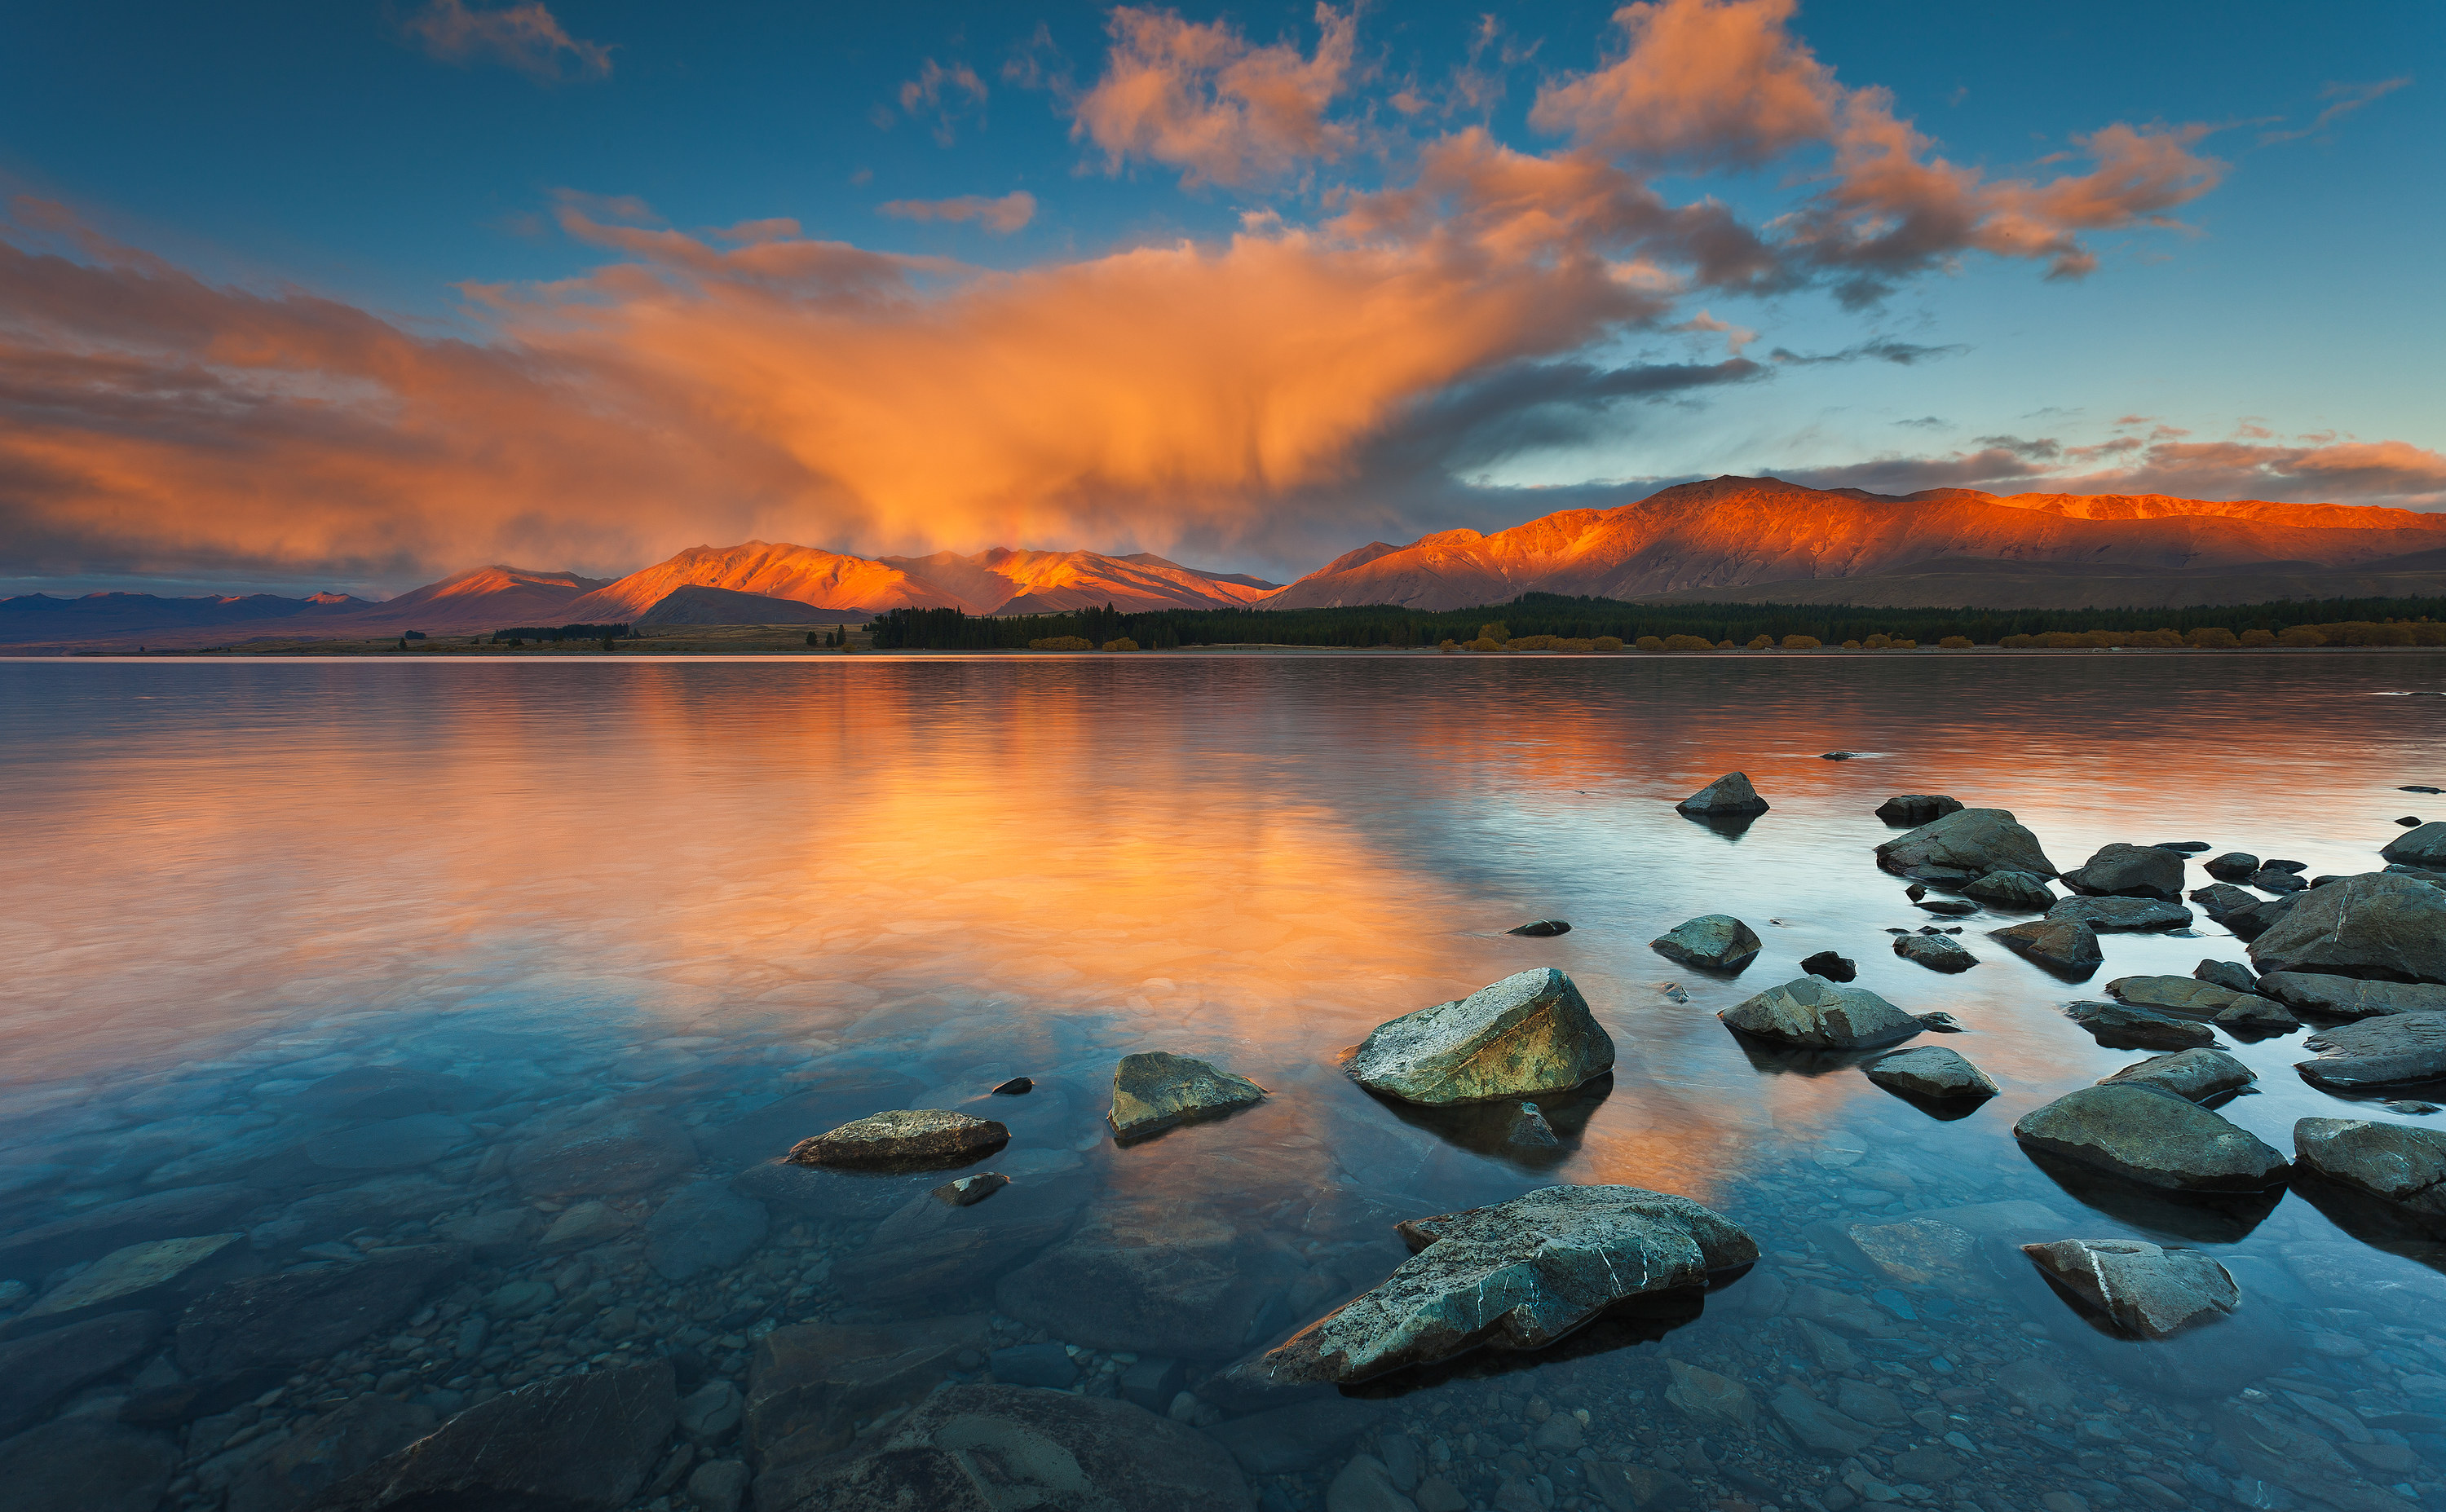 Lake Tekapo in the Canterbury region of NZ